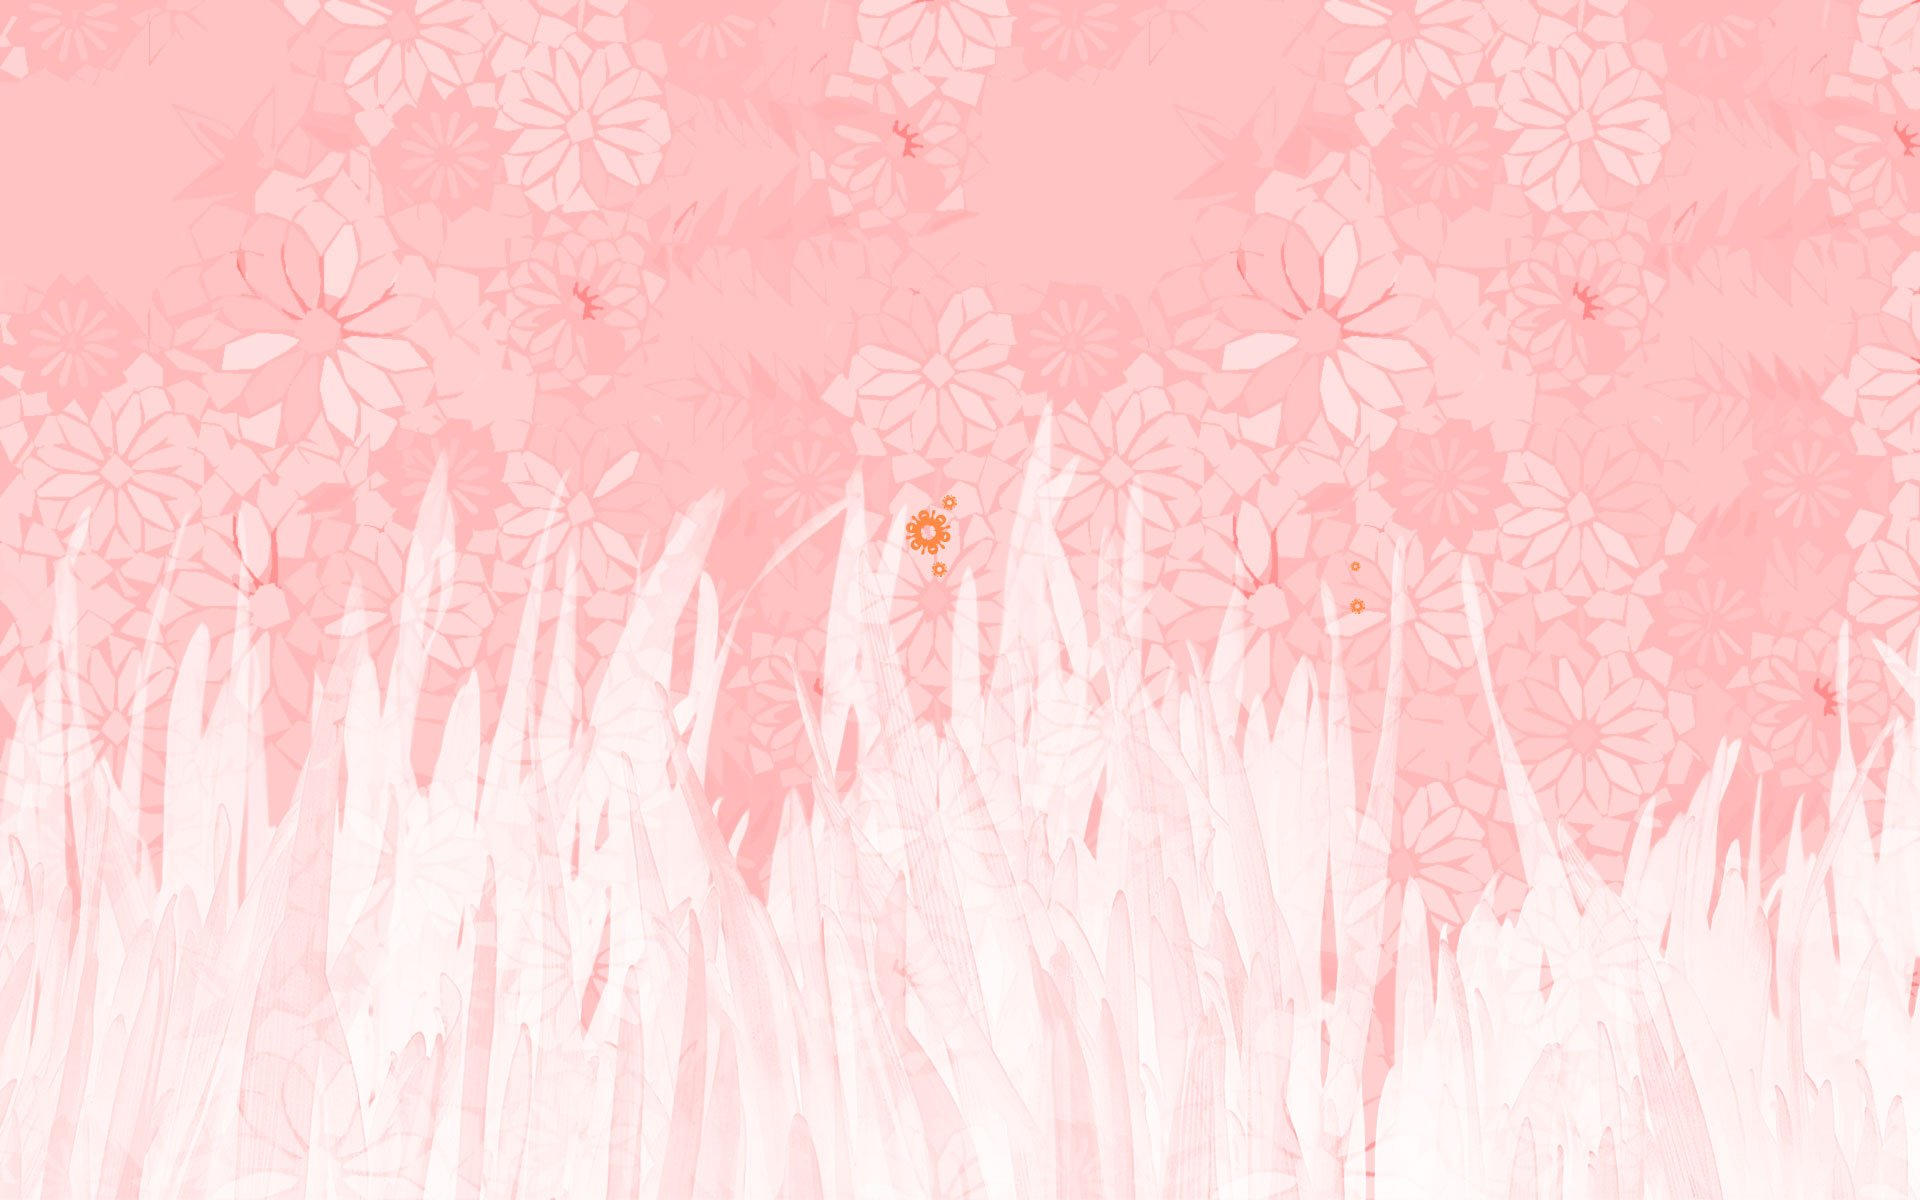 Light Pink Wallpapers Download 1920x1200